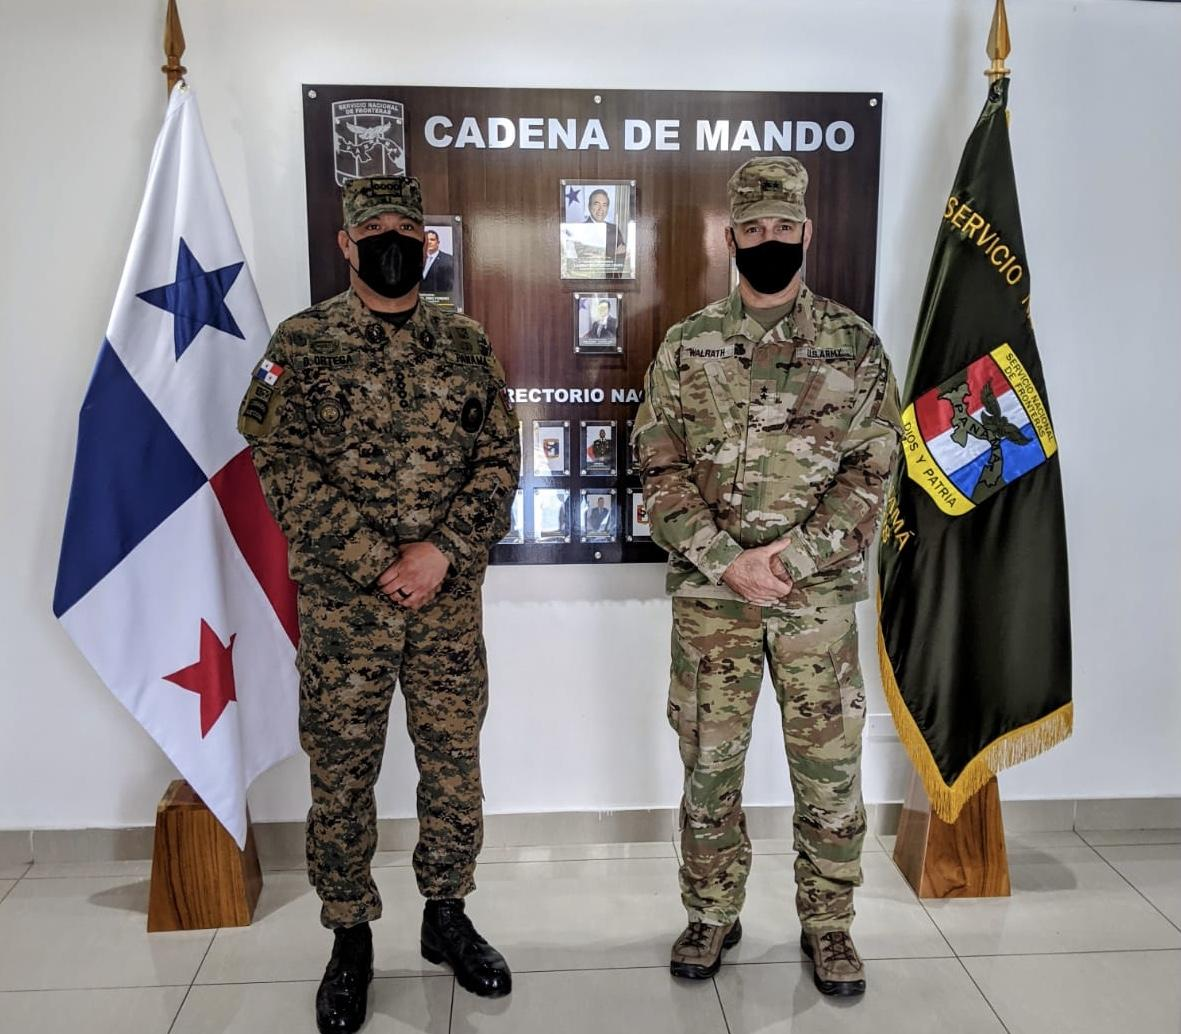 Commissioner Oriel Ortega, SENAFRONT general director, poses with Major General Daniel R. Walrath, ARSOUTH commanding general, at the SENAFRONT headquarters in Panama City, in April 2021. (Photo: U.S. Army South)